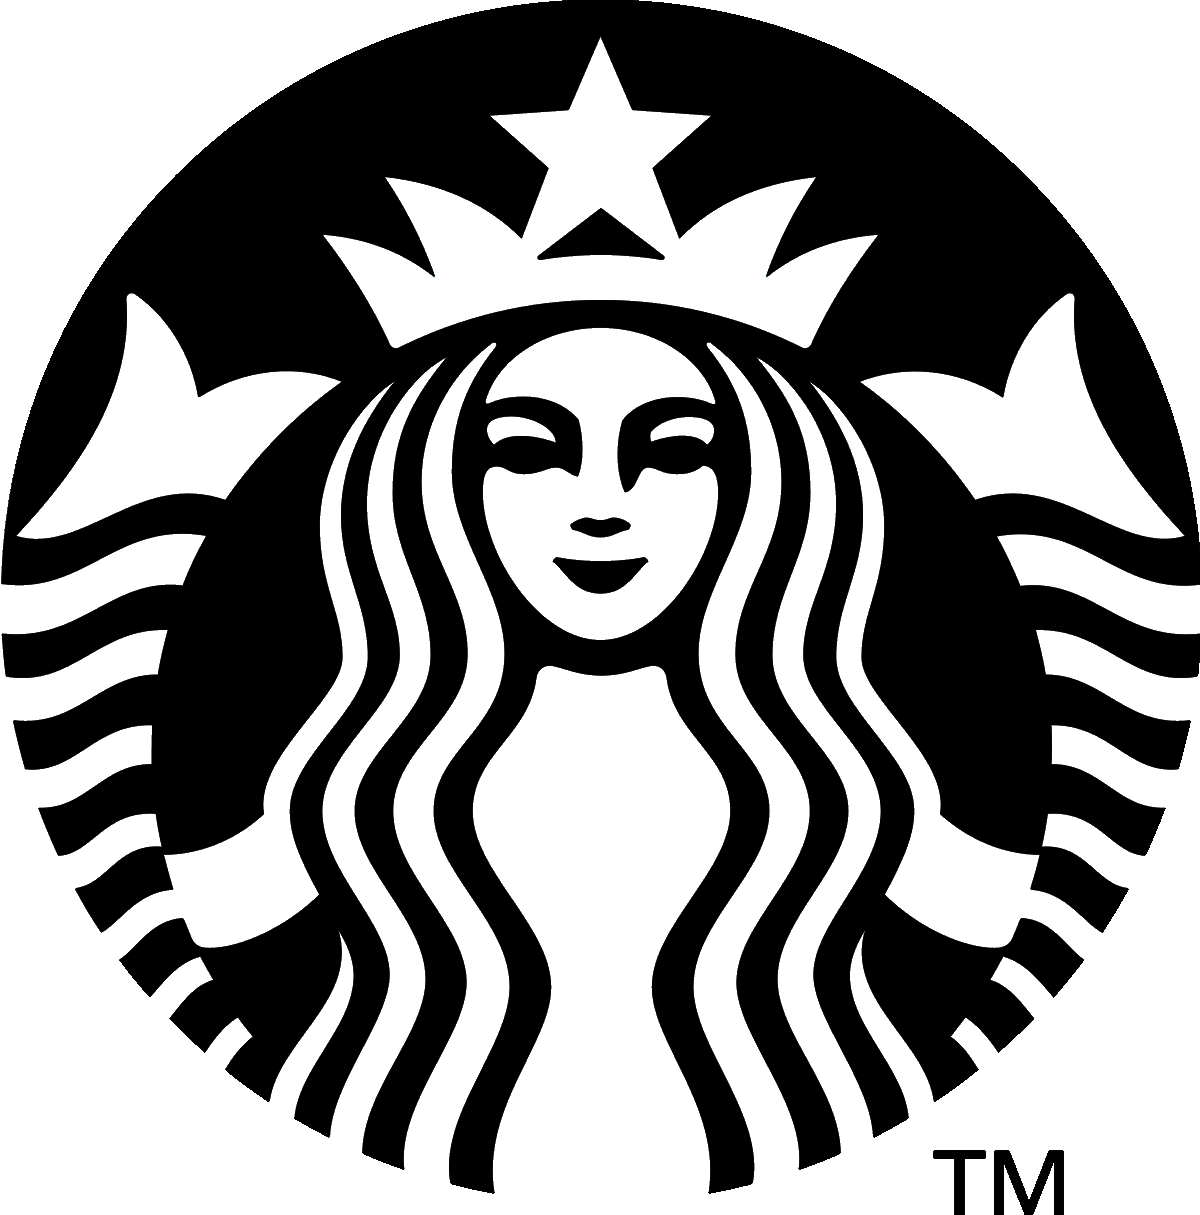 Starbucks Coffee - Almada Forum (1.51